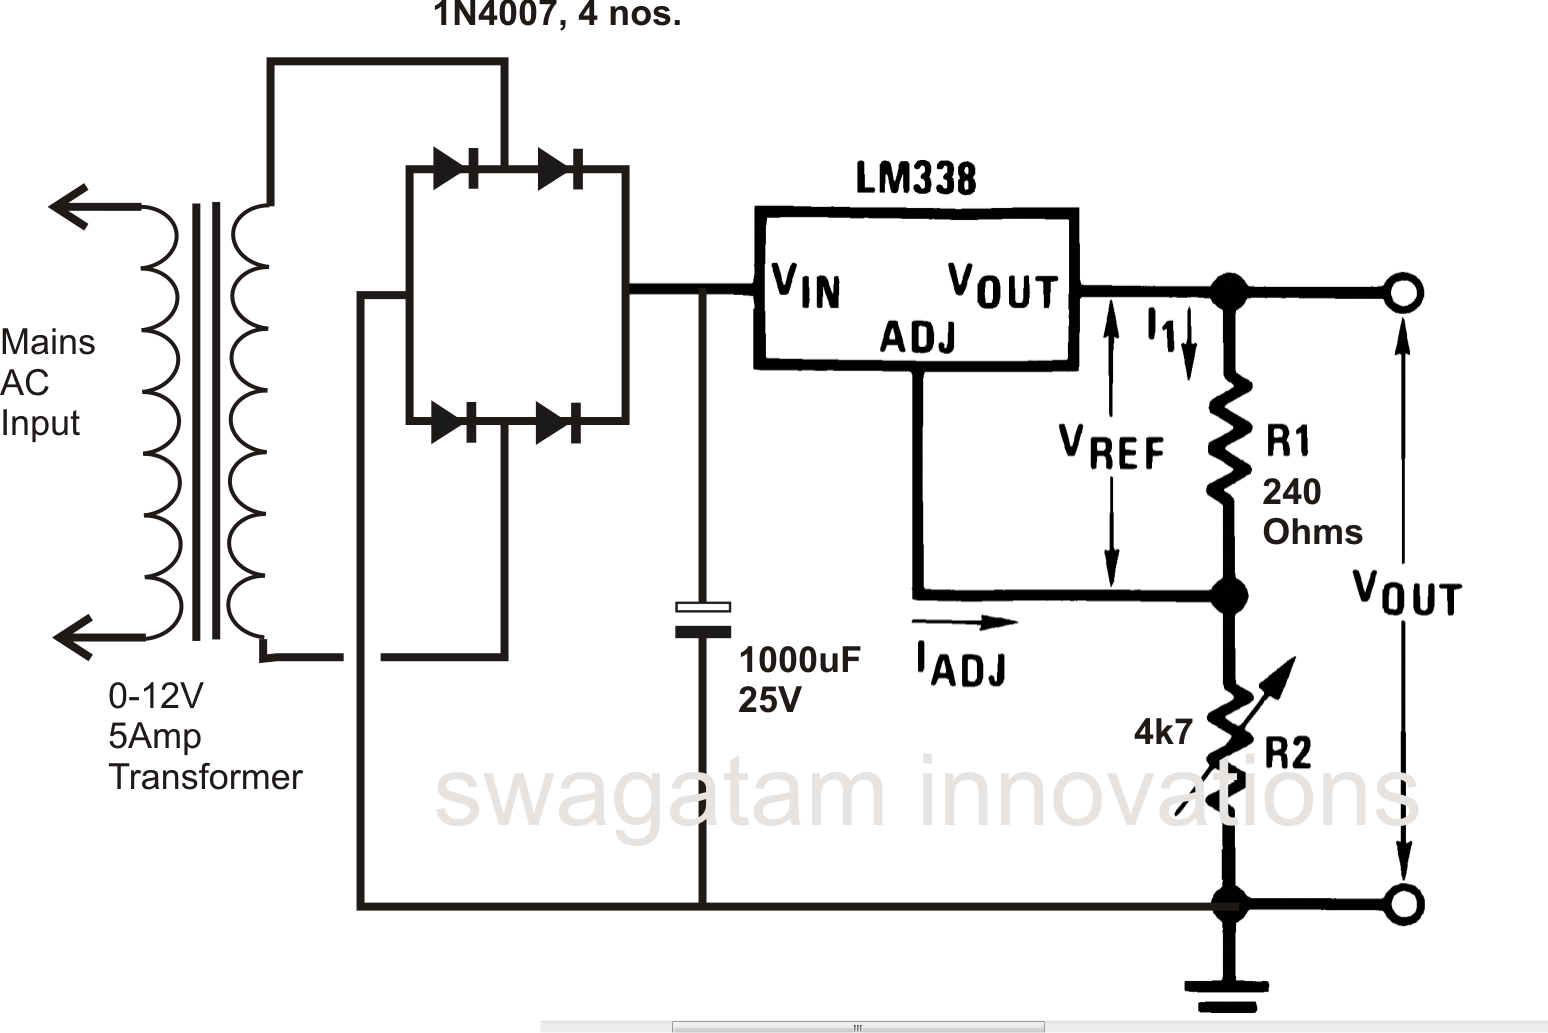 Simple Power Circuit Diagram Wiring Diagrams Voltage Supply 1 Powersupplycircuit Seekiccom How To Design A Simplest The Amplifier